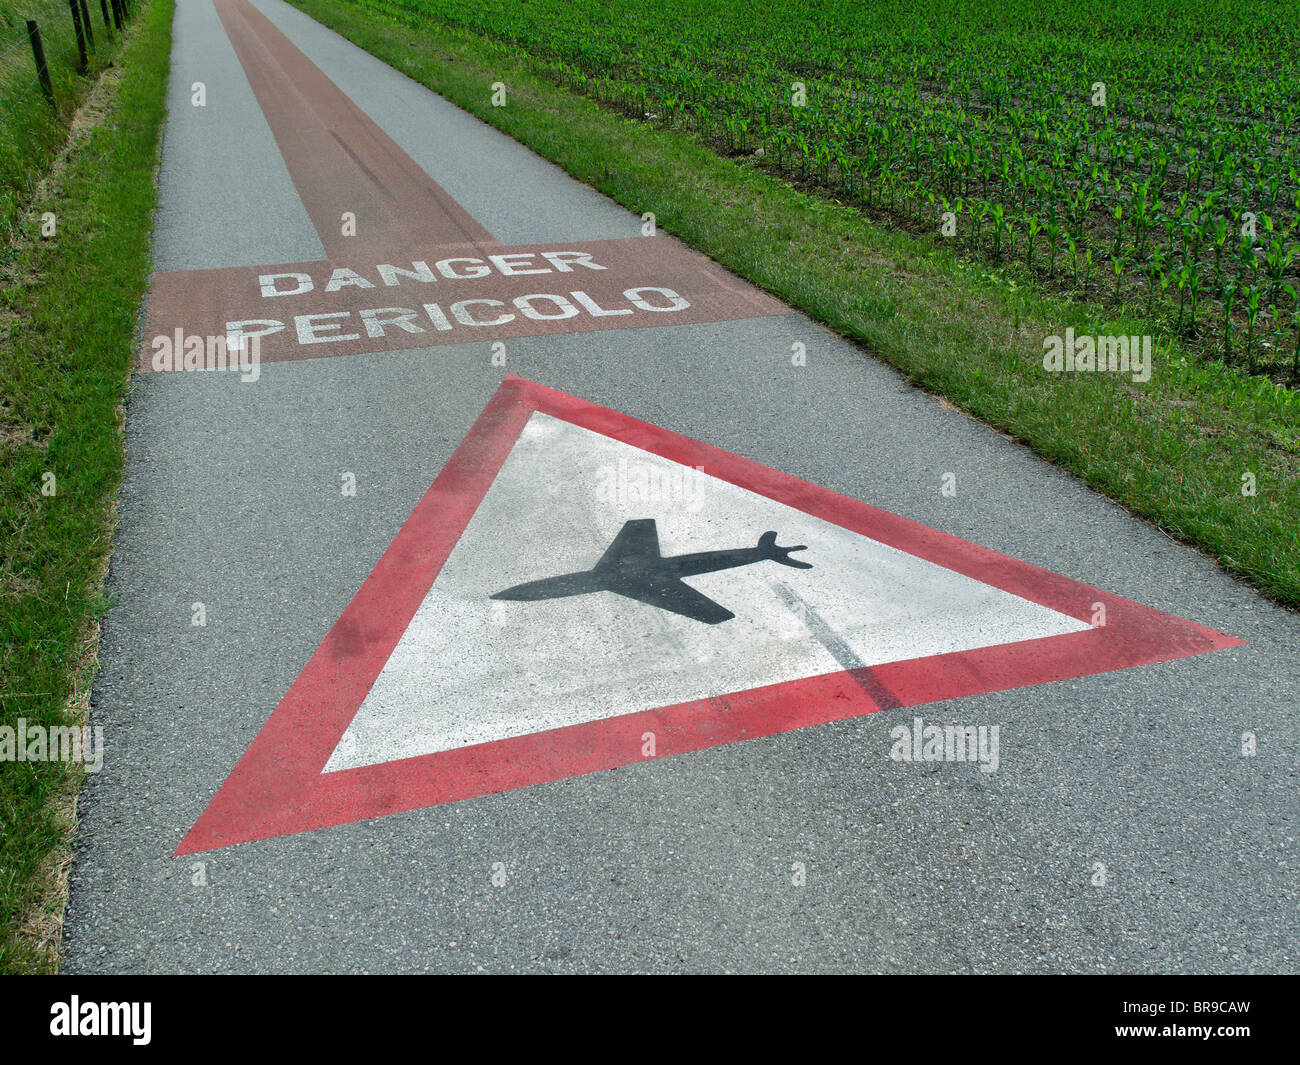 danger warning sign of airplanes flying at low altidude - area of magadino plain - canton of ticino - switzerland - Stock Image